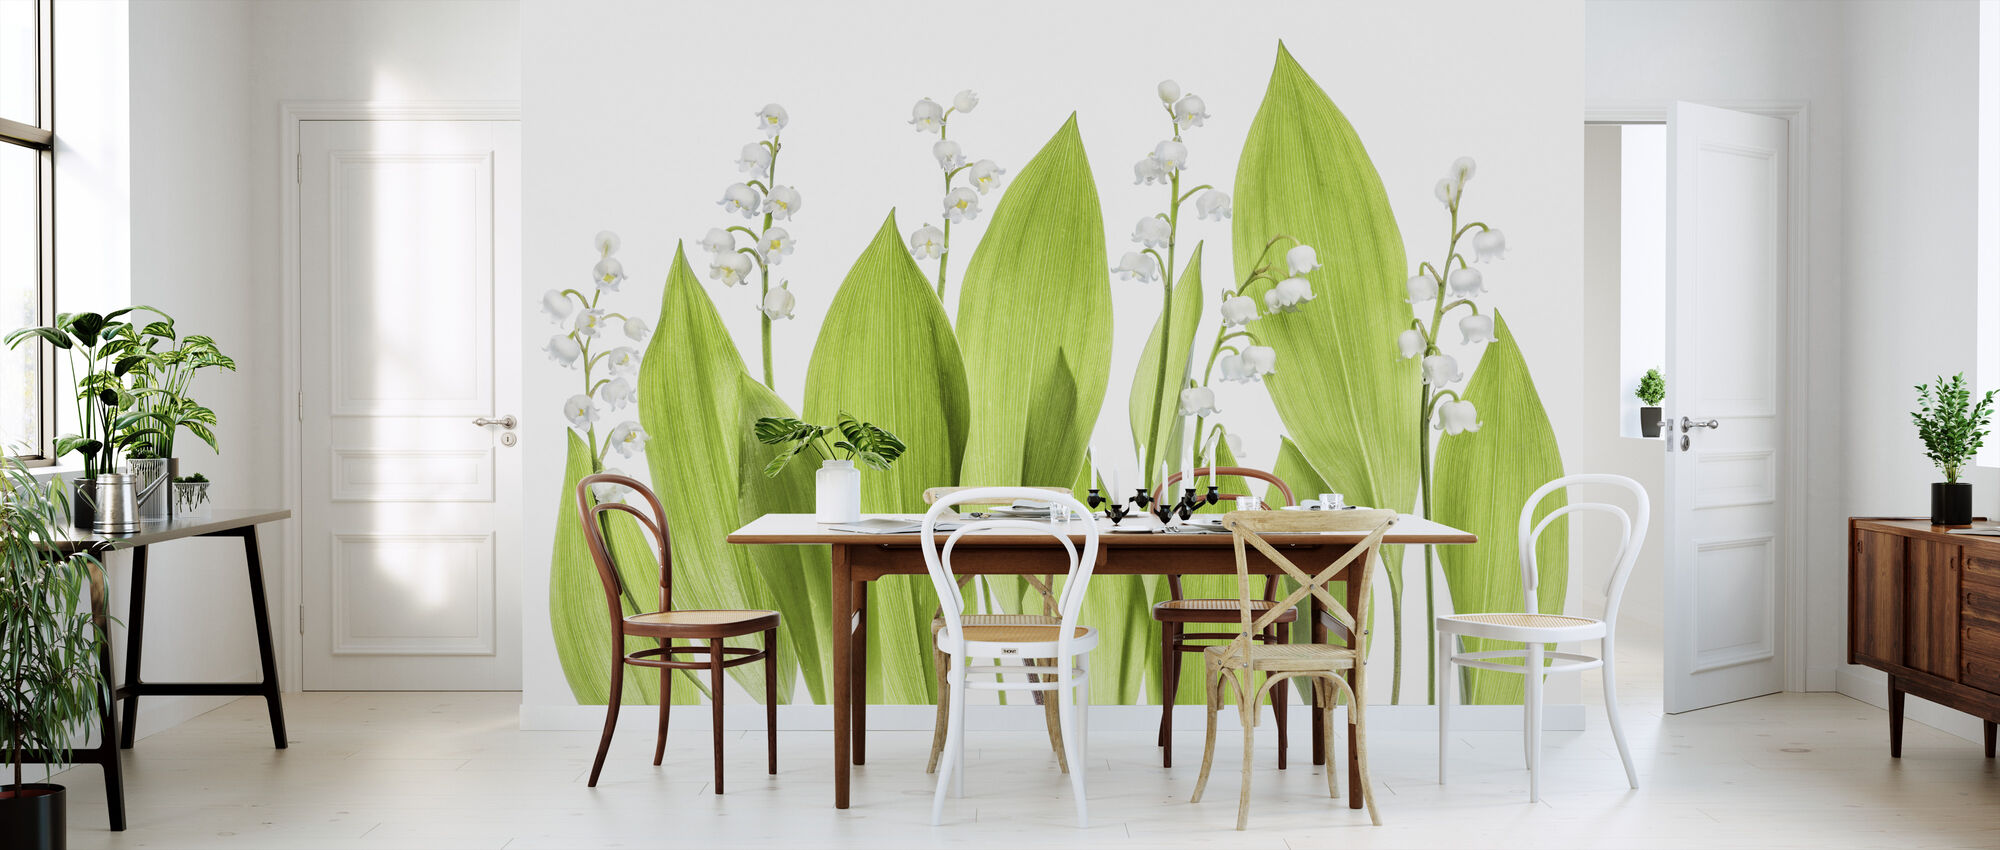 Lily of the Valley - Wallpaper - Kitchen